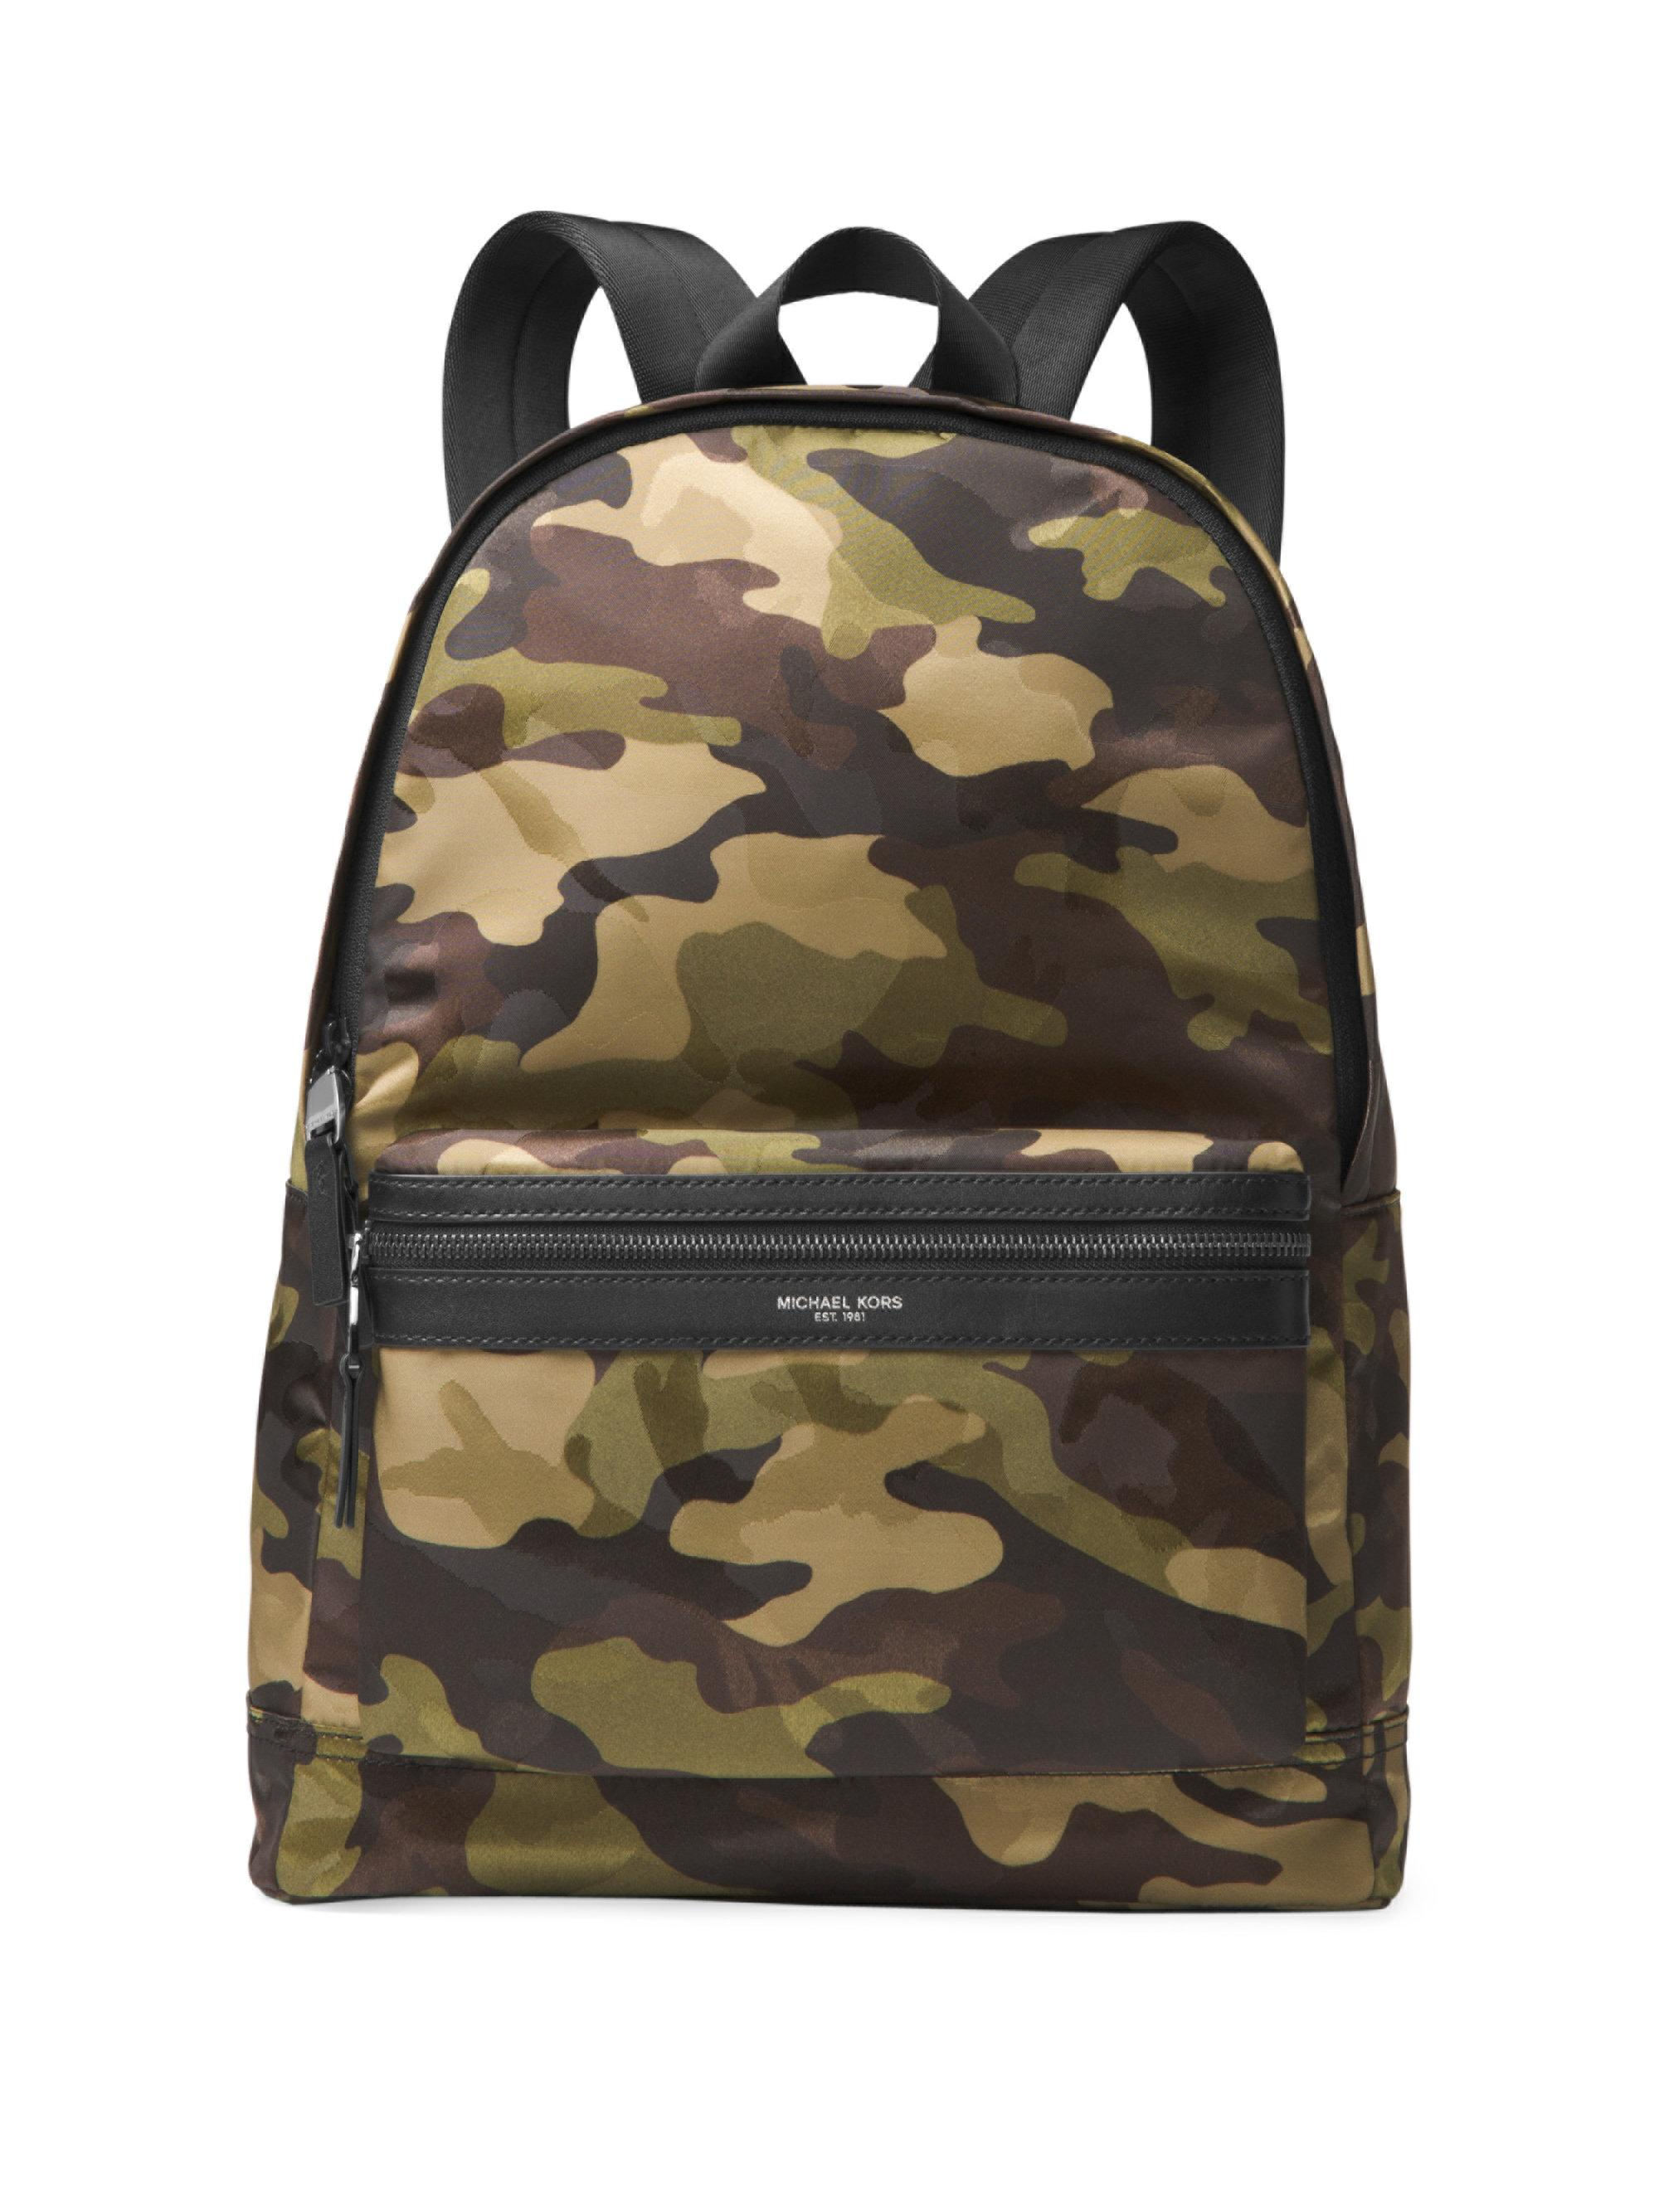 740465a370b2 Lyst - Michael Kors Military Camouflage Backpack in Blue for Men